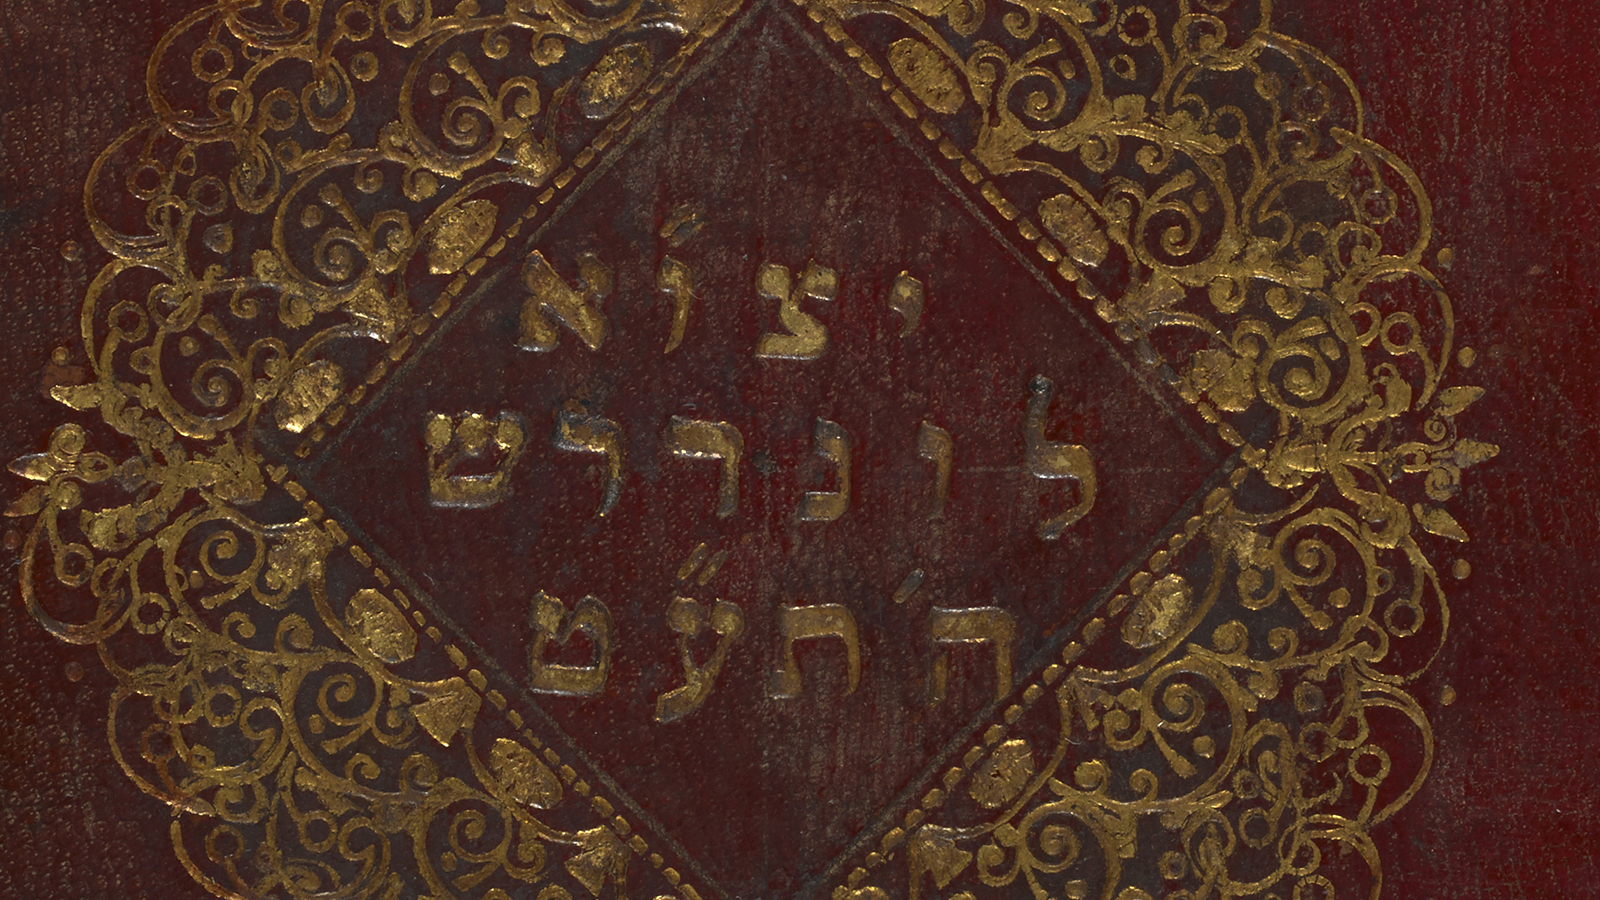 The Digital Life of a Hebrew Manuscript: Application of 3D Imaging at the British Library (Kristin Phelps and Adi Keinan-Schoonbaert)